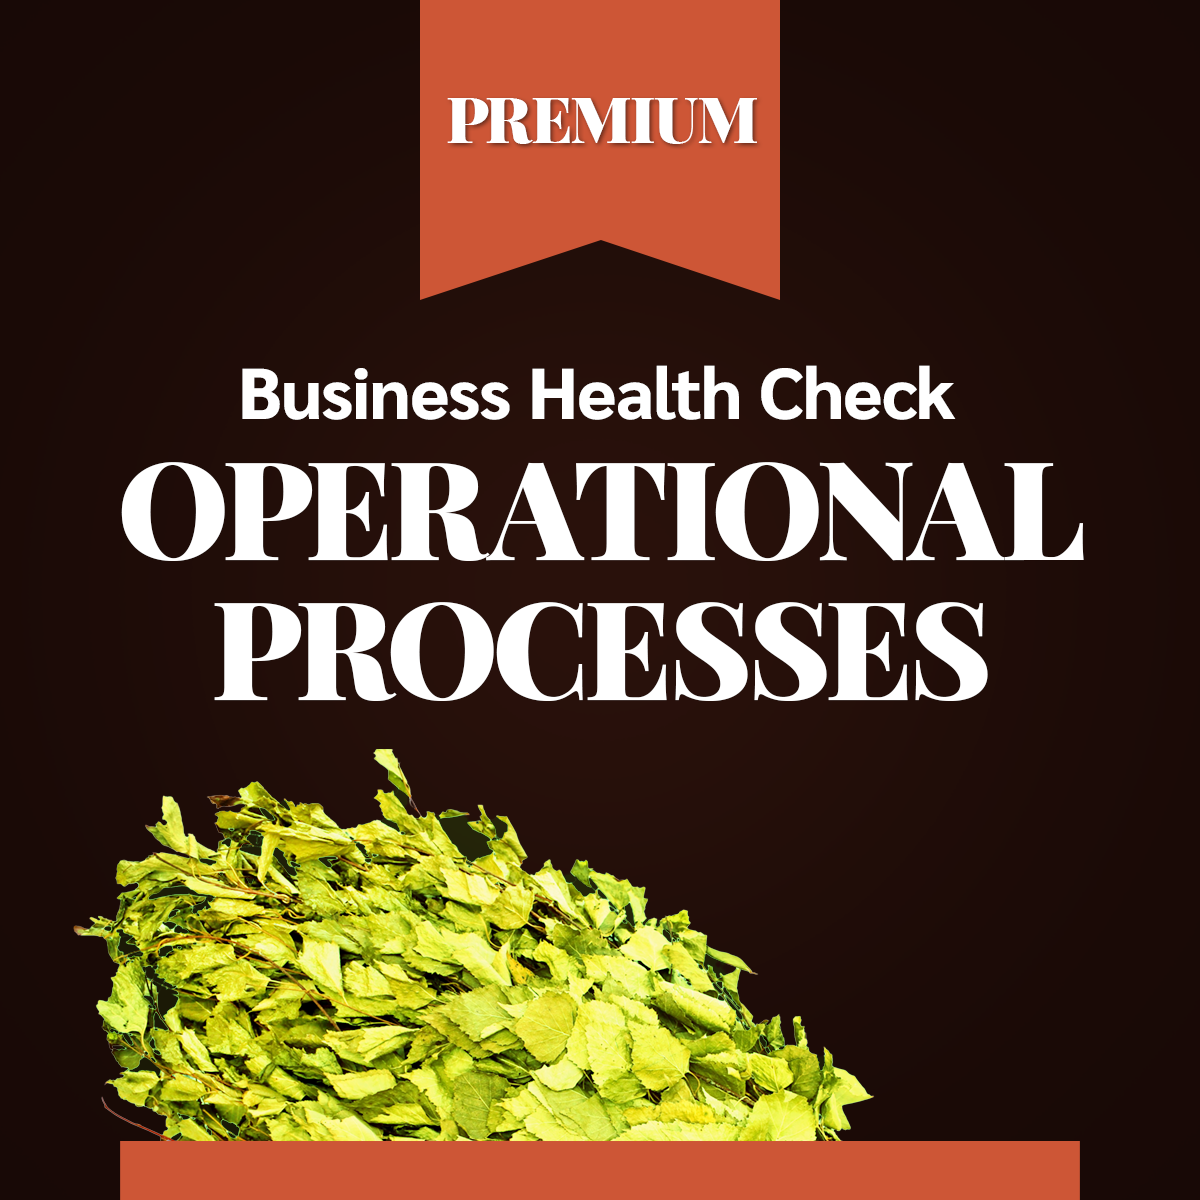 Business Health Check - Operational processes PREMIUM